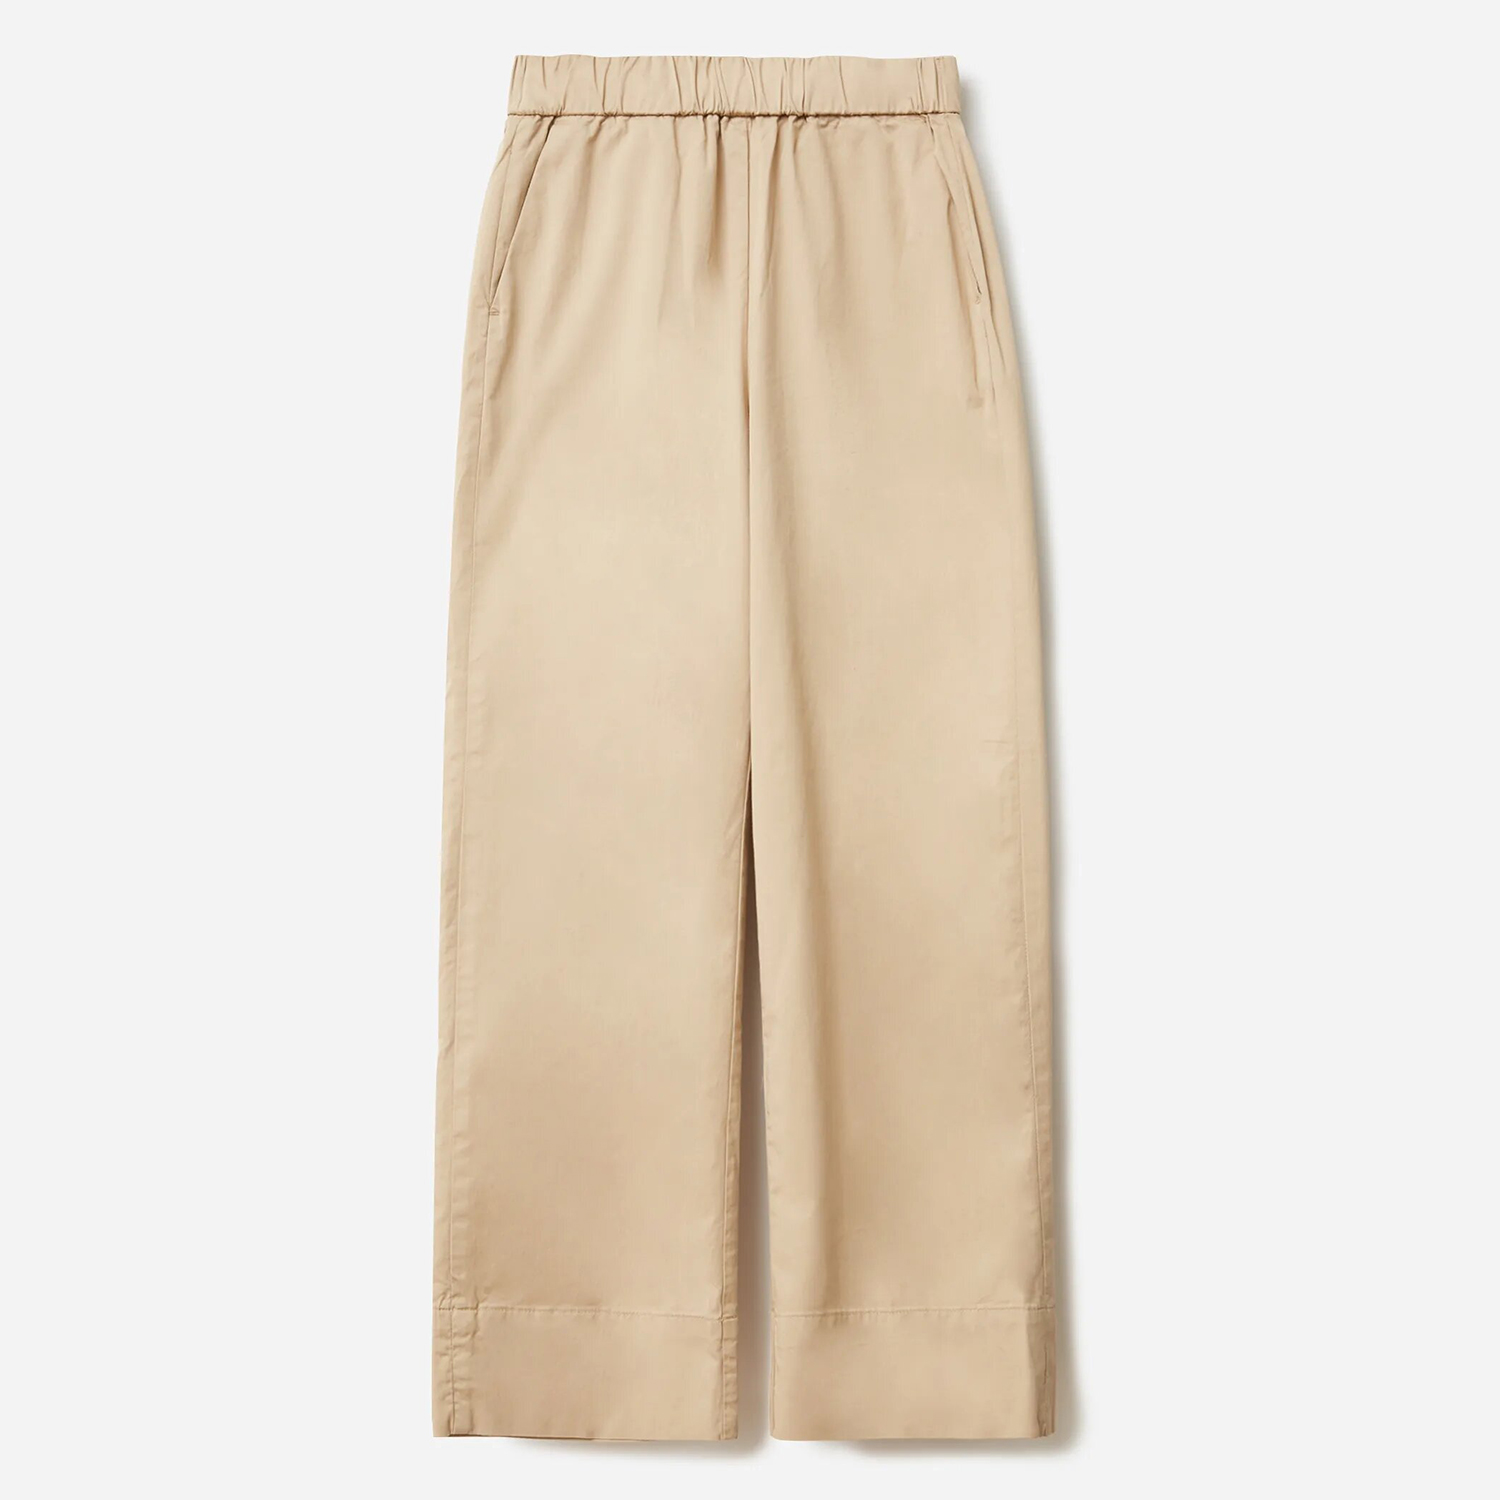 Everlane Women's Easy Straight Leg Chino